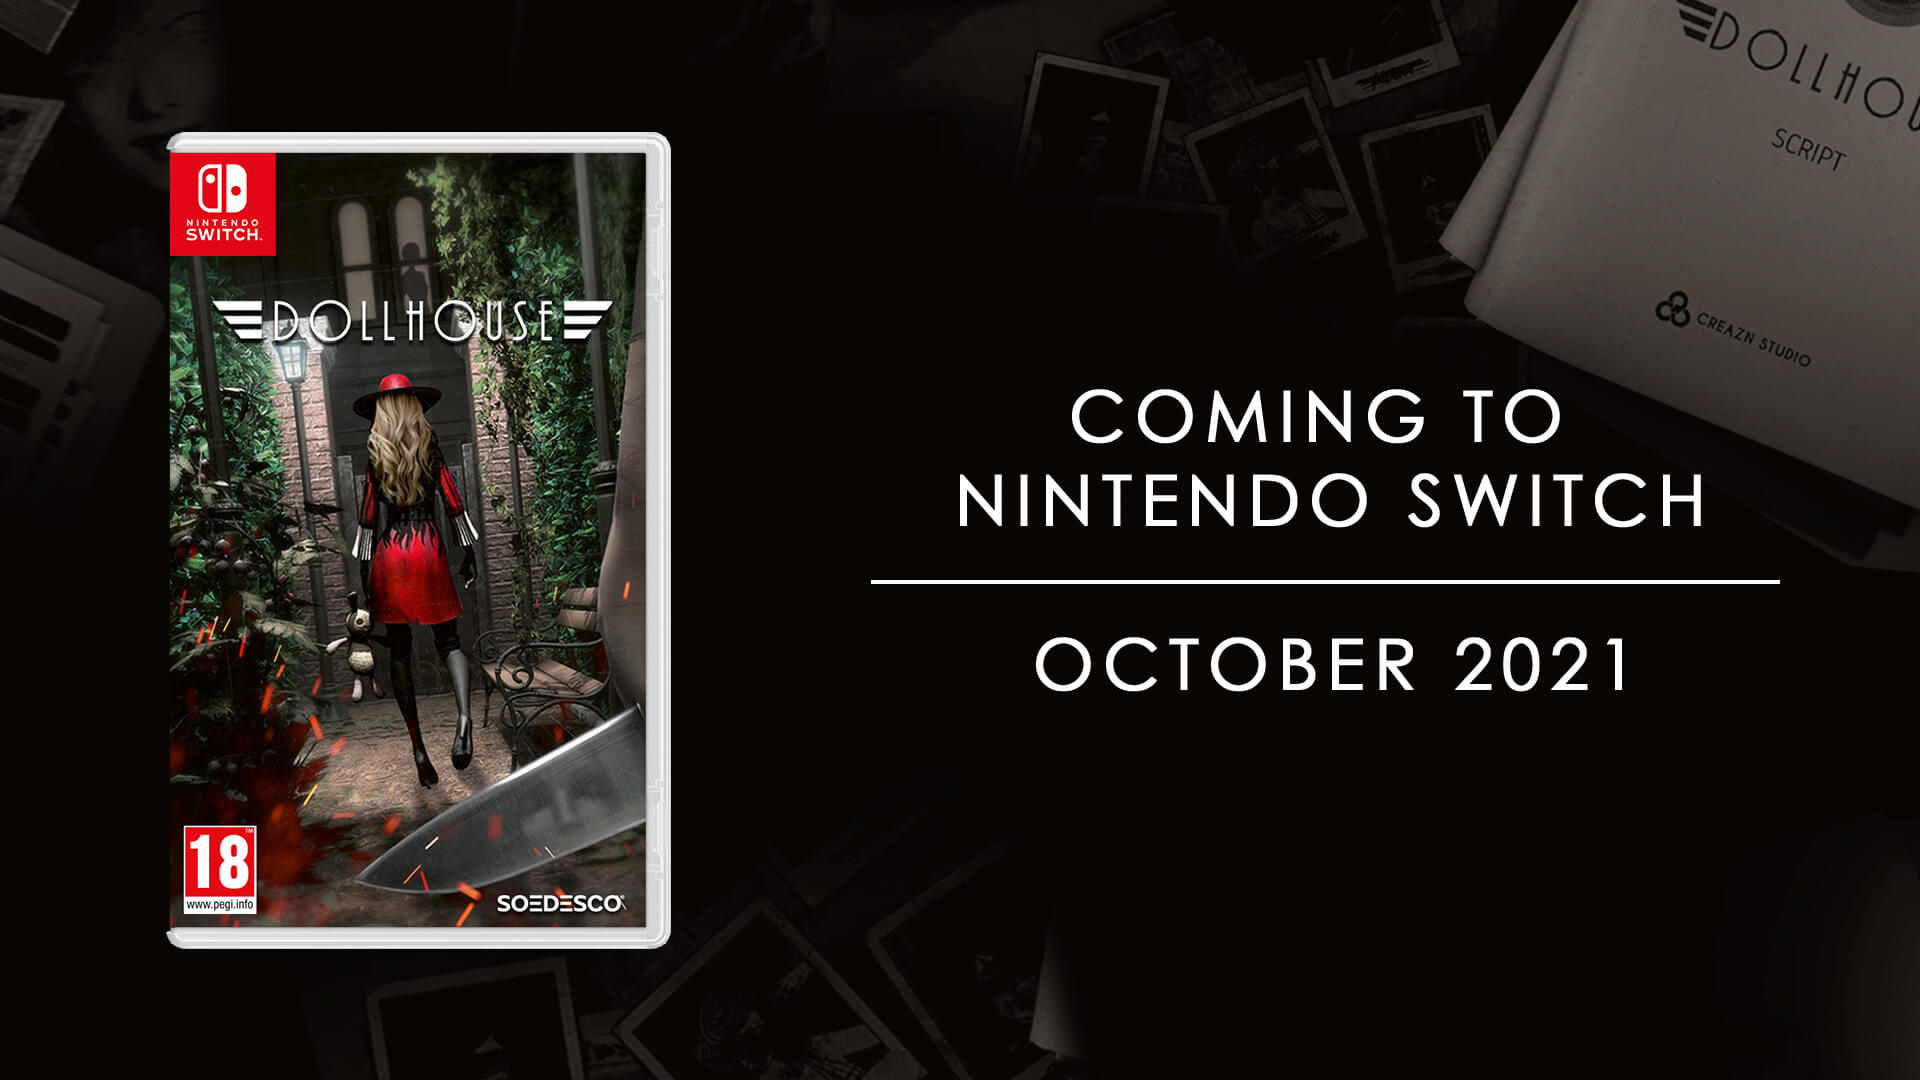 The film noir horror experience goes Nintendo, digitally and physically